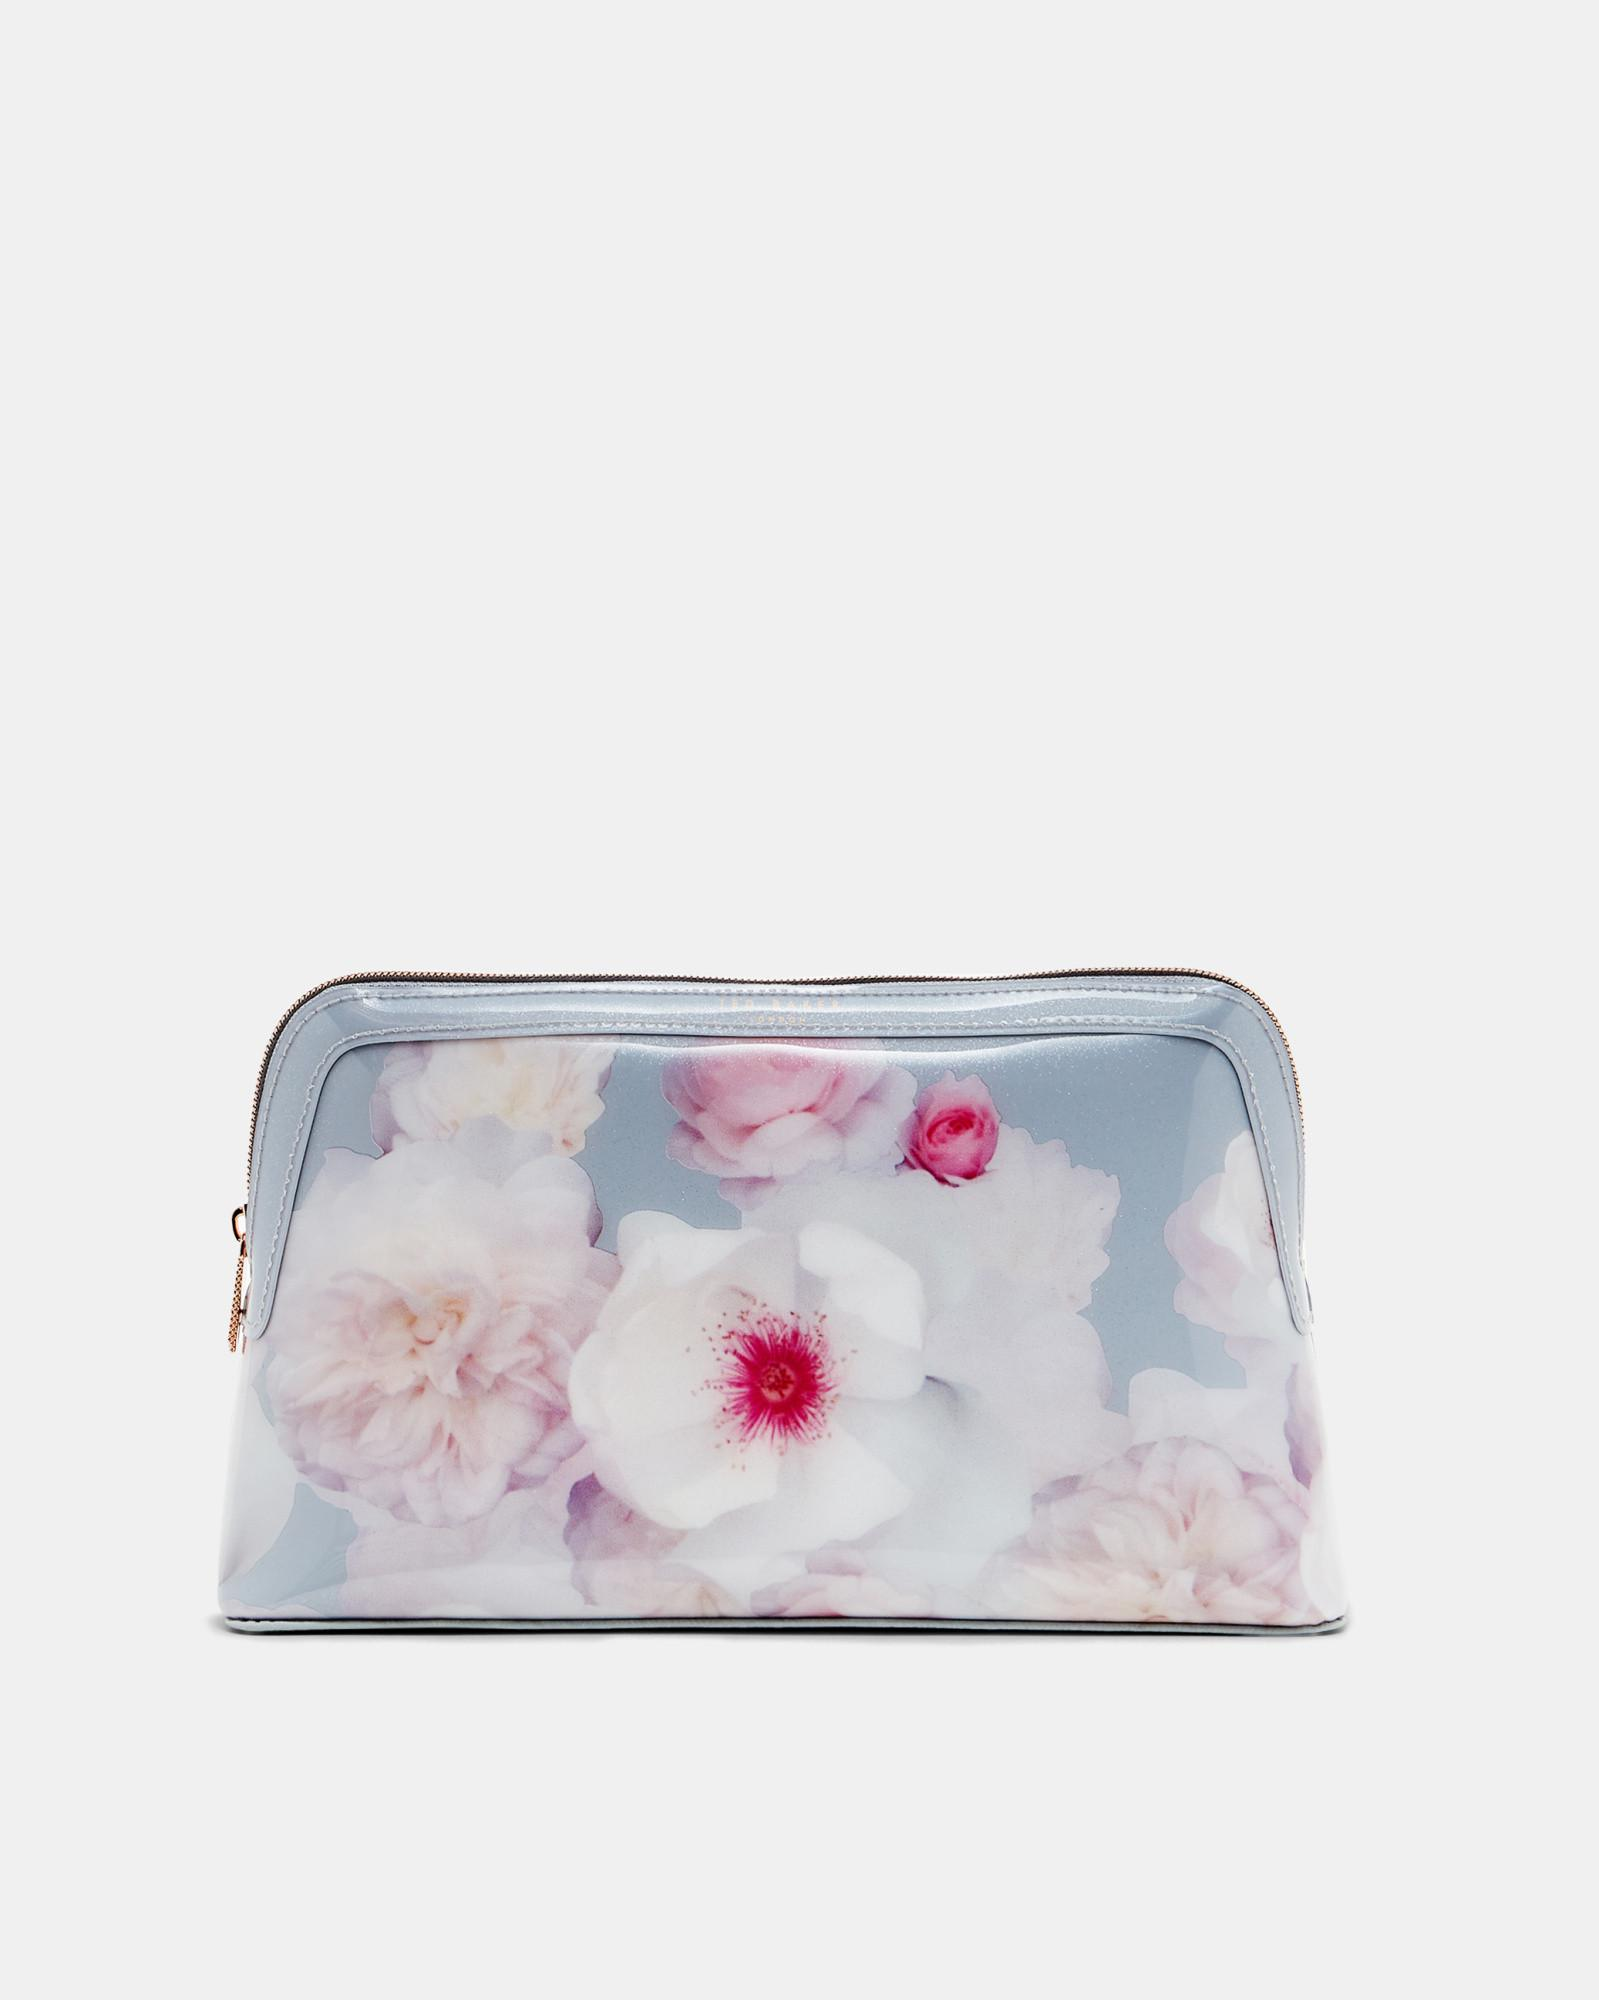 bd7725dea6a5 Ted Baker Cosmetic Purse - Best Purse Image Ccdbb.Org